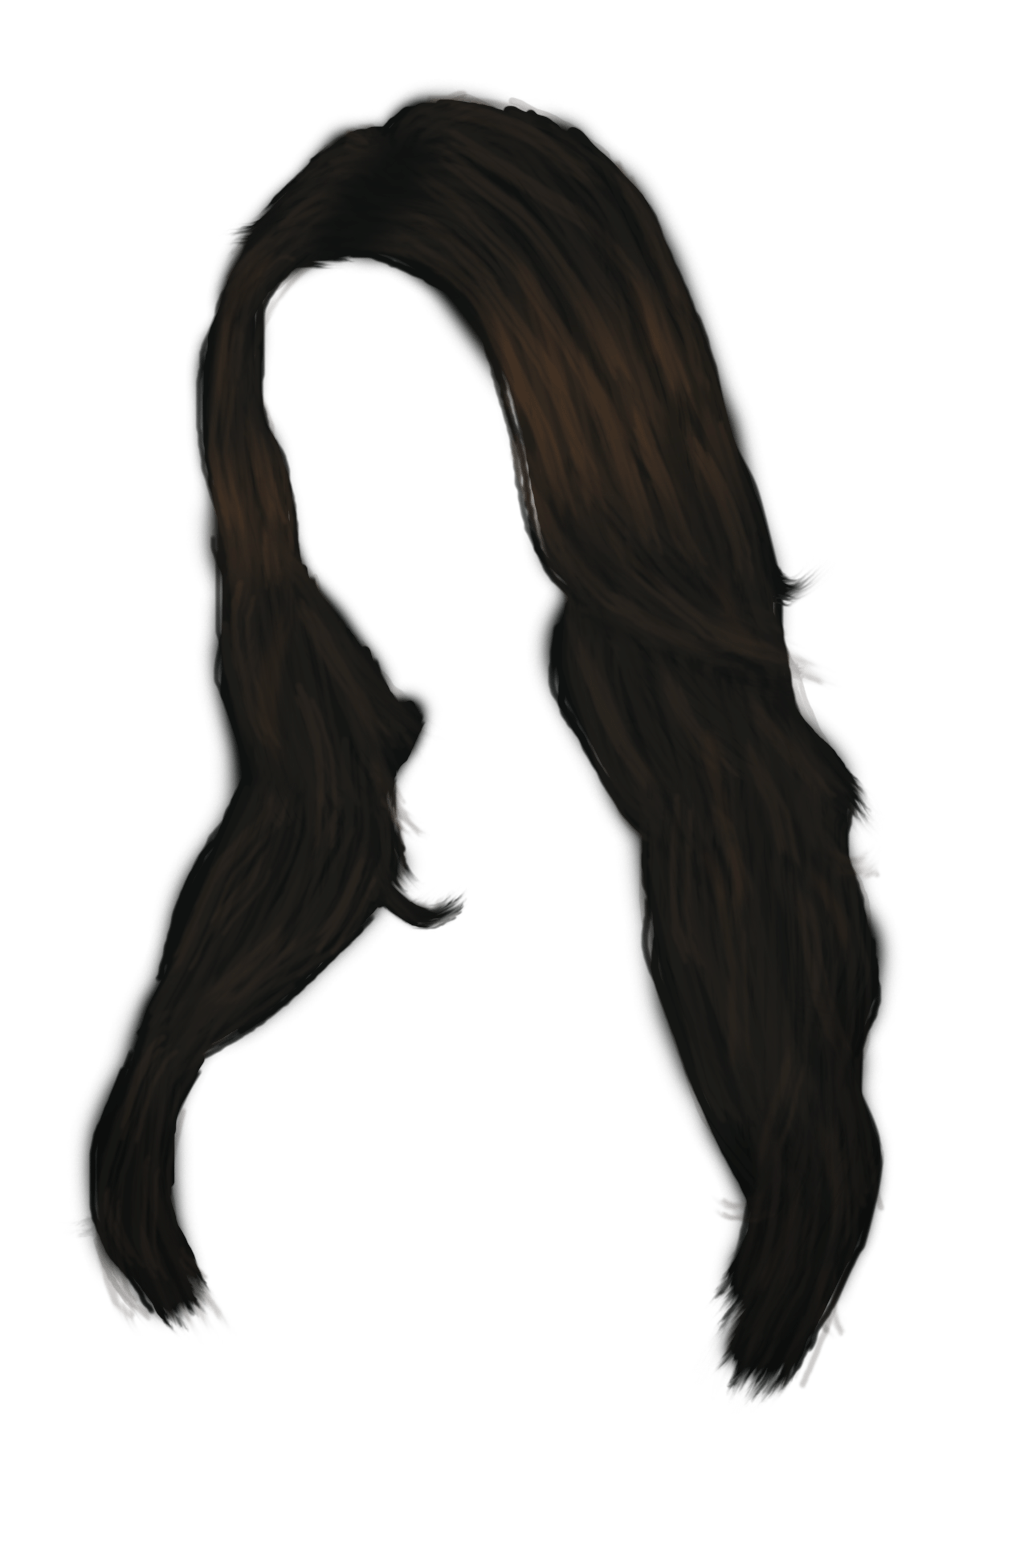 Hairstyles Resolution 500 604 Size 432 Kb Image Format Png